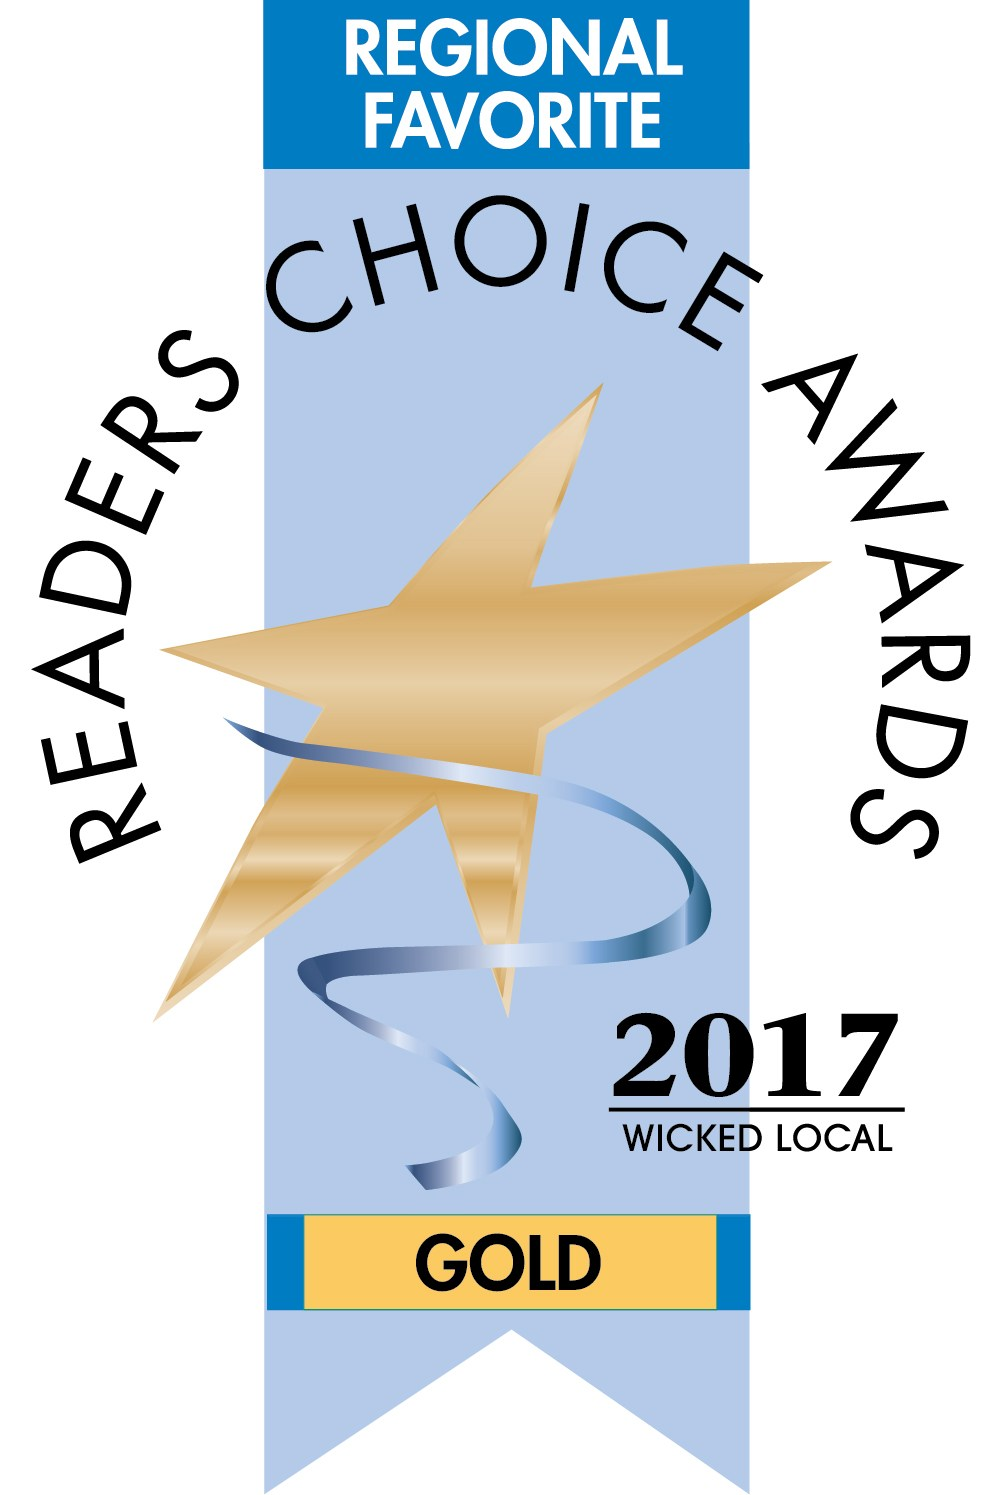 Wicked Local's Regional Gold Winner